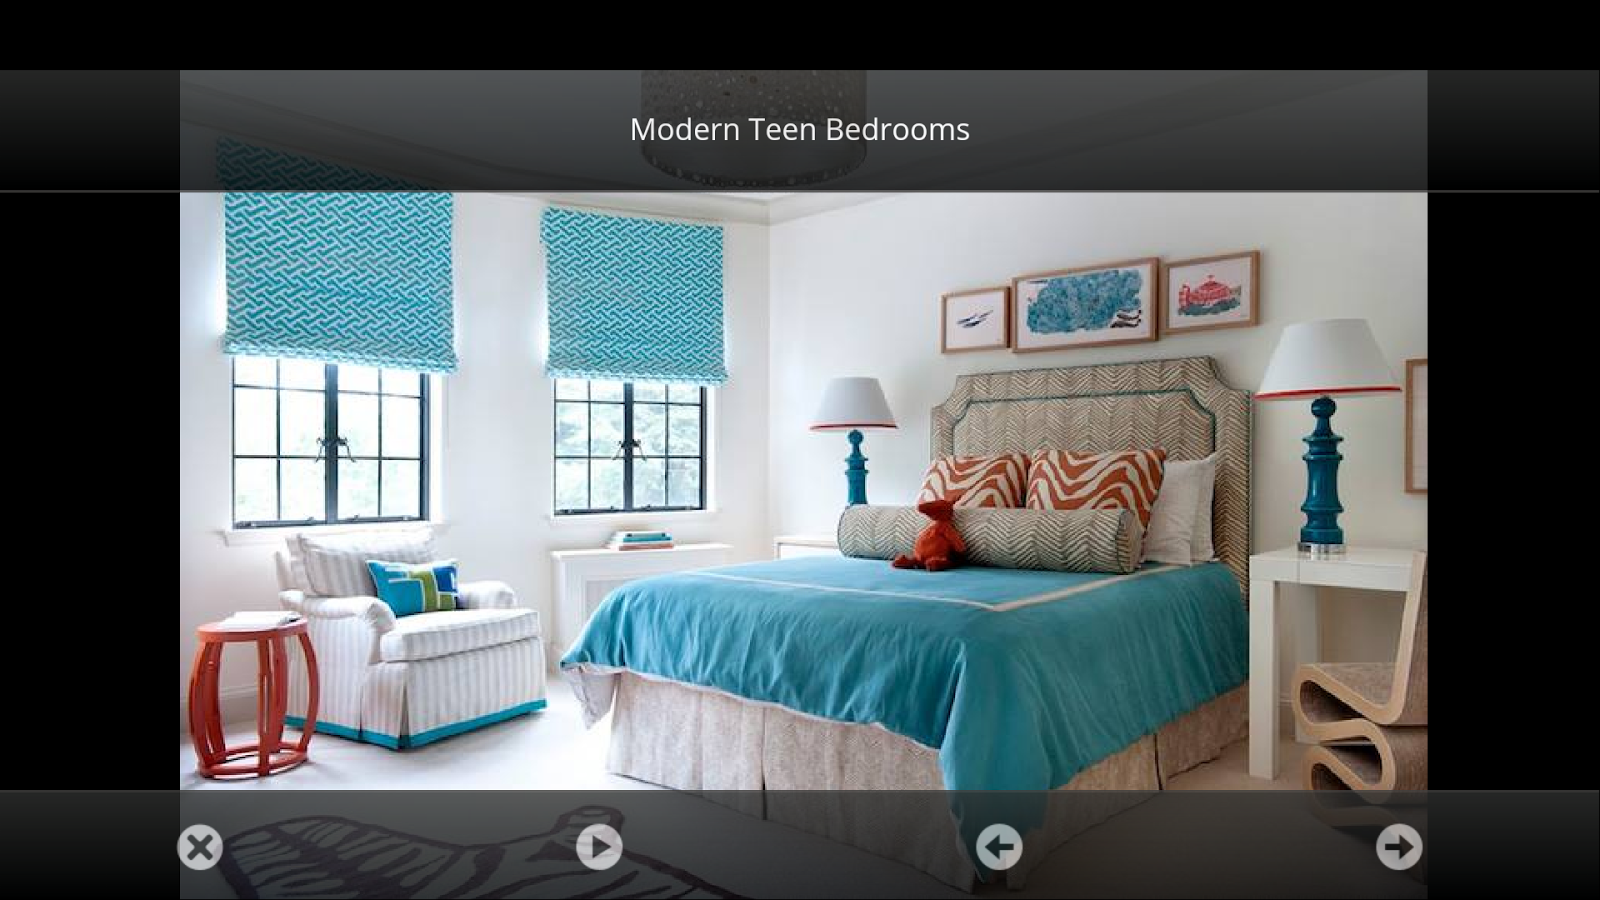 Bedroom decorating ideas android apps on google play Room makeover app